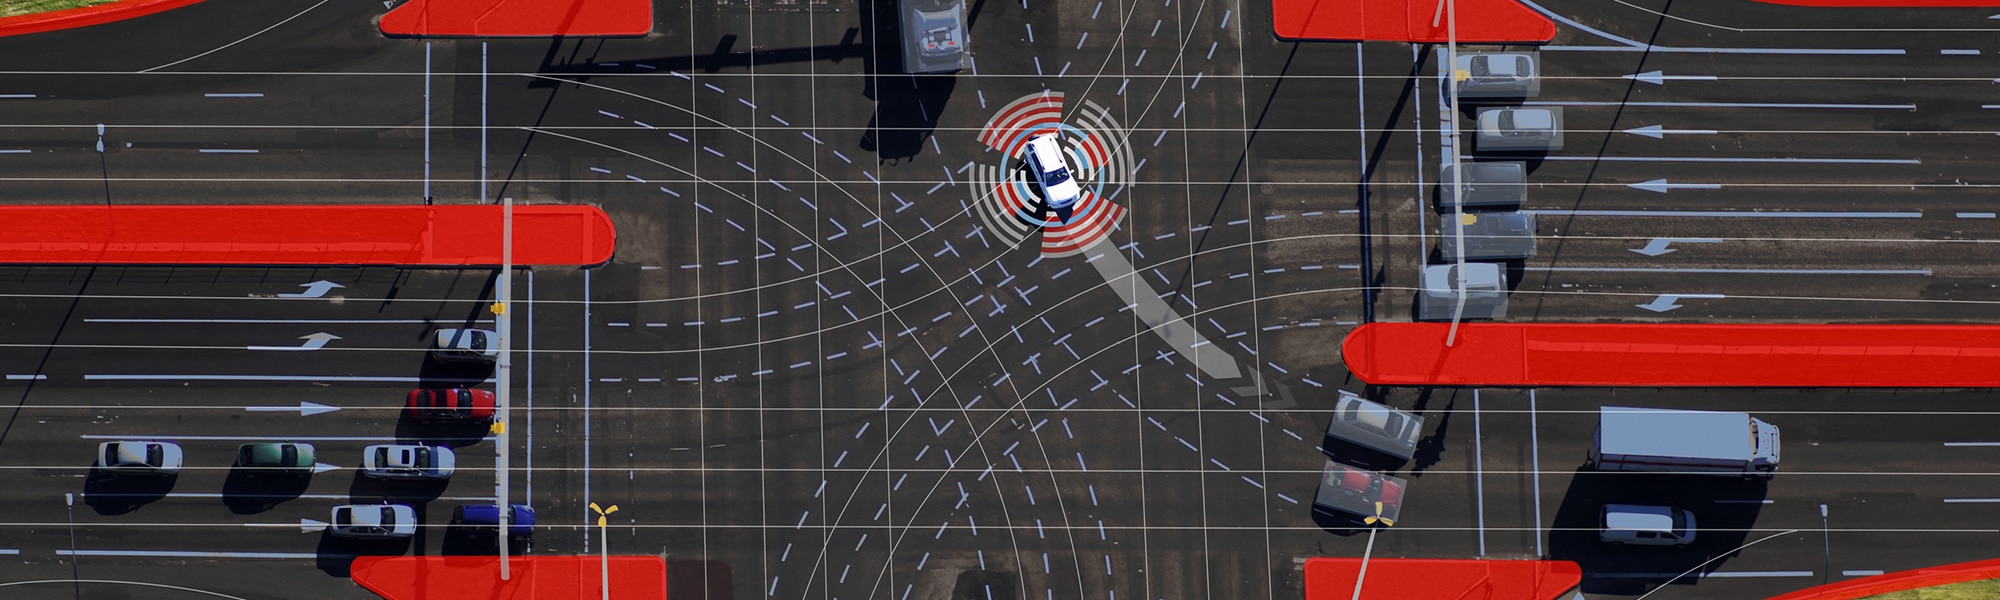 How do HD maps support autonomous driving safety?